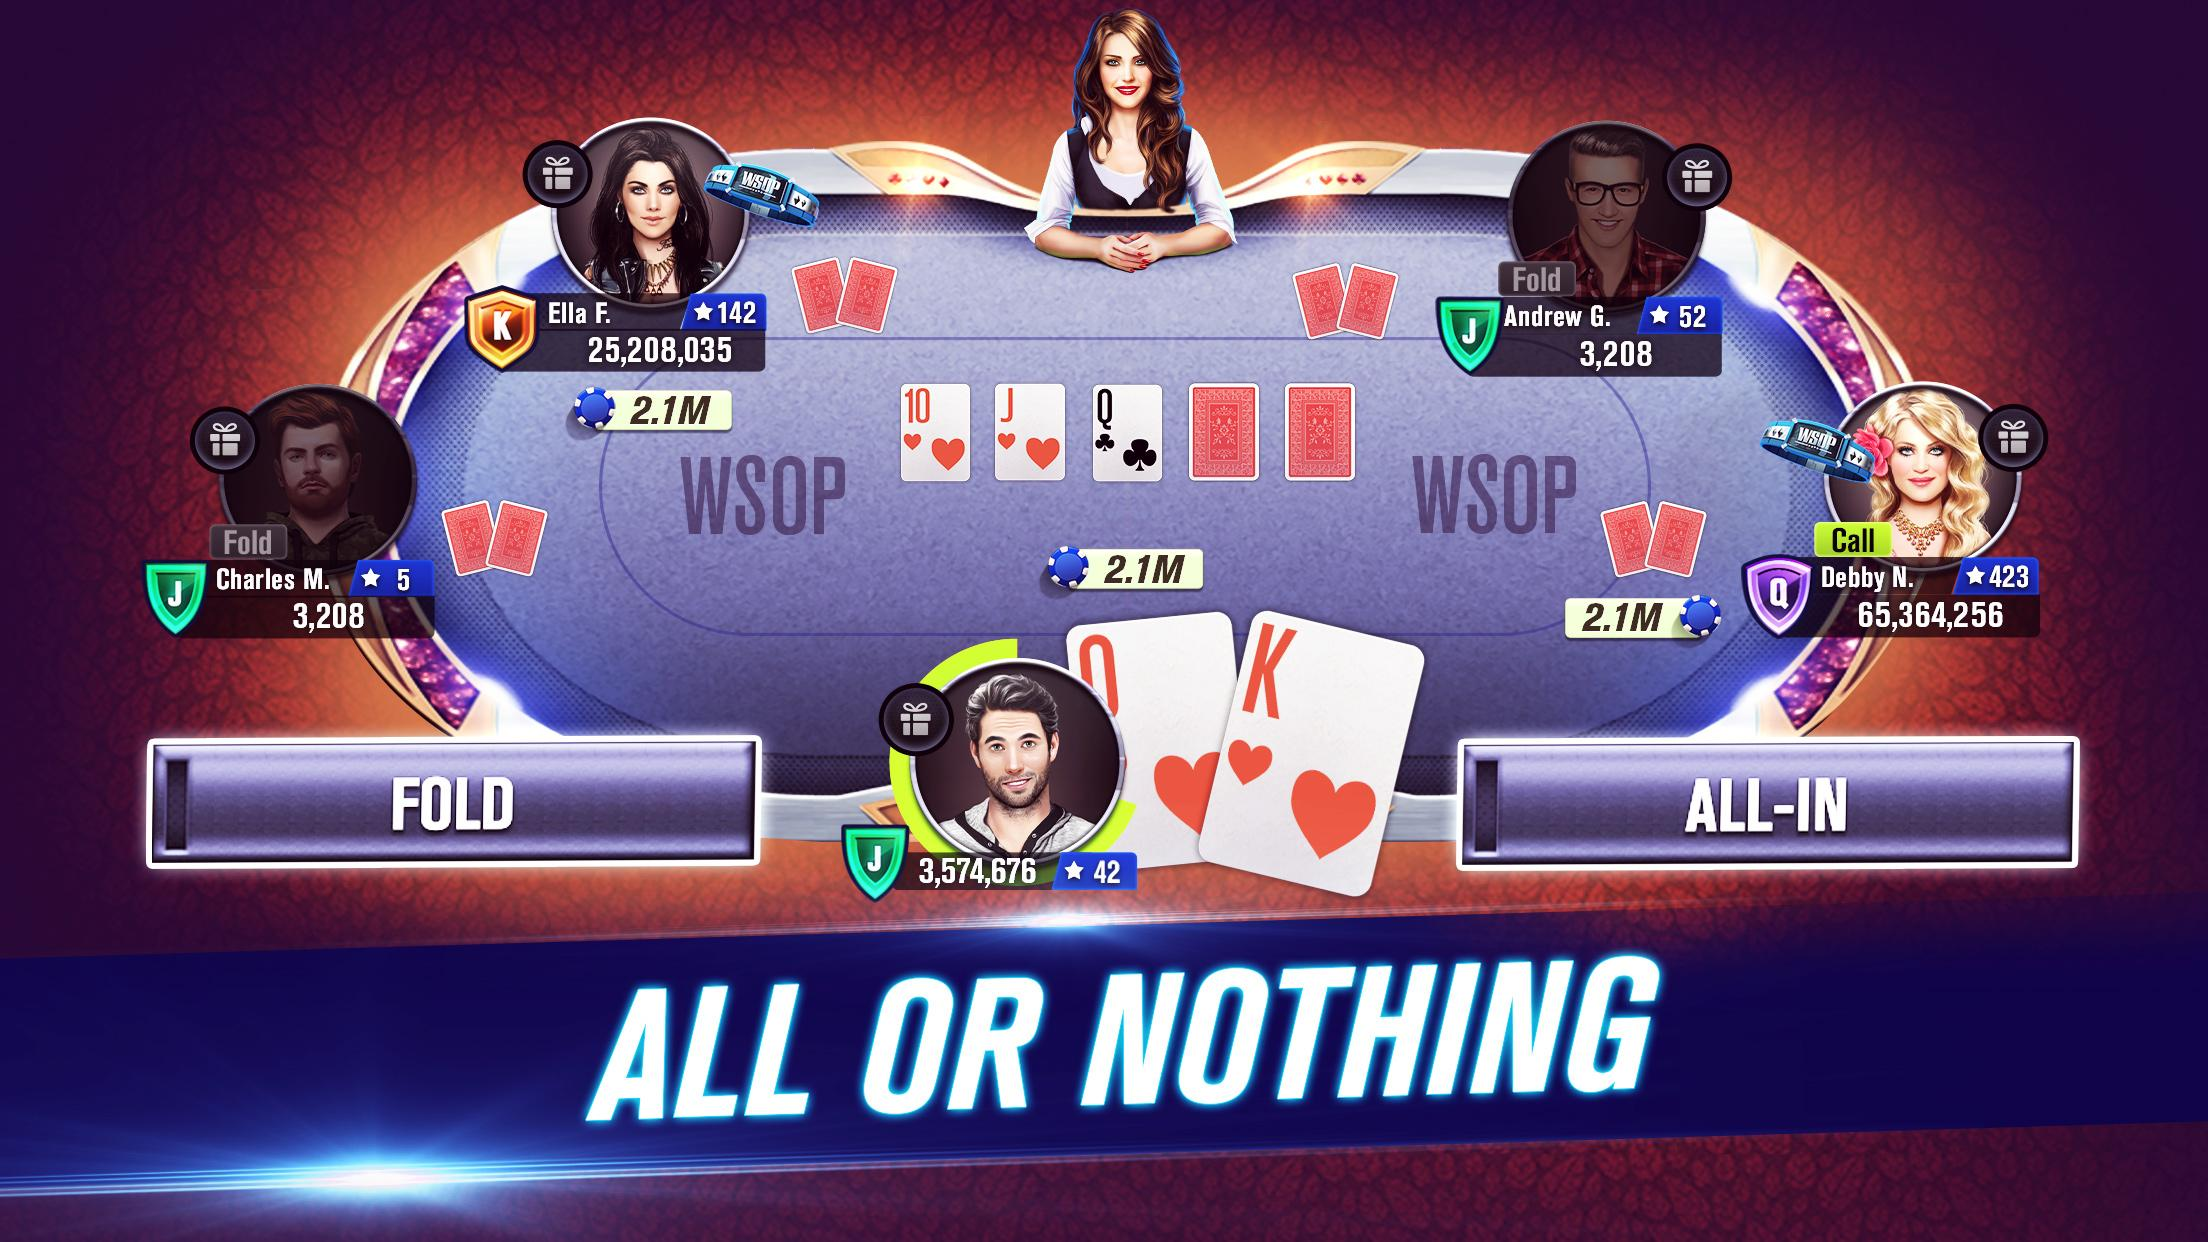 World Series Of Poker Wsop Free Texas Holdem Poker For Android Apk Download